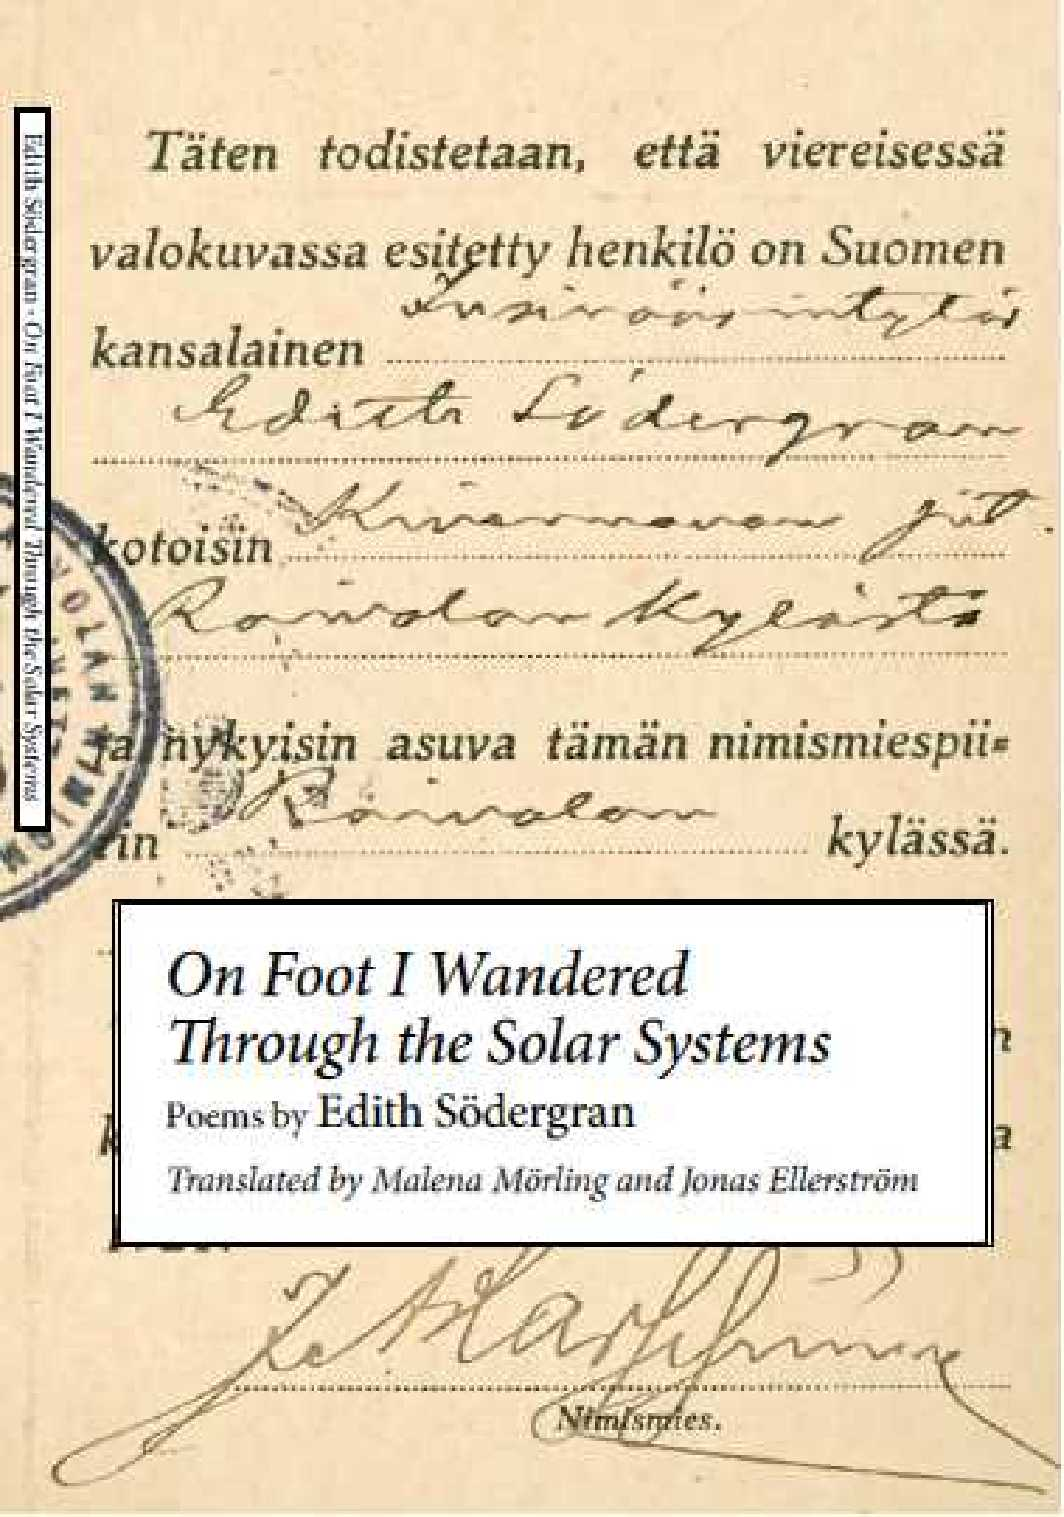 on-foot-i-wandered-through-the-solar-systems-edith-soedergran